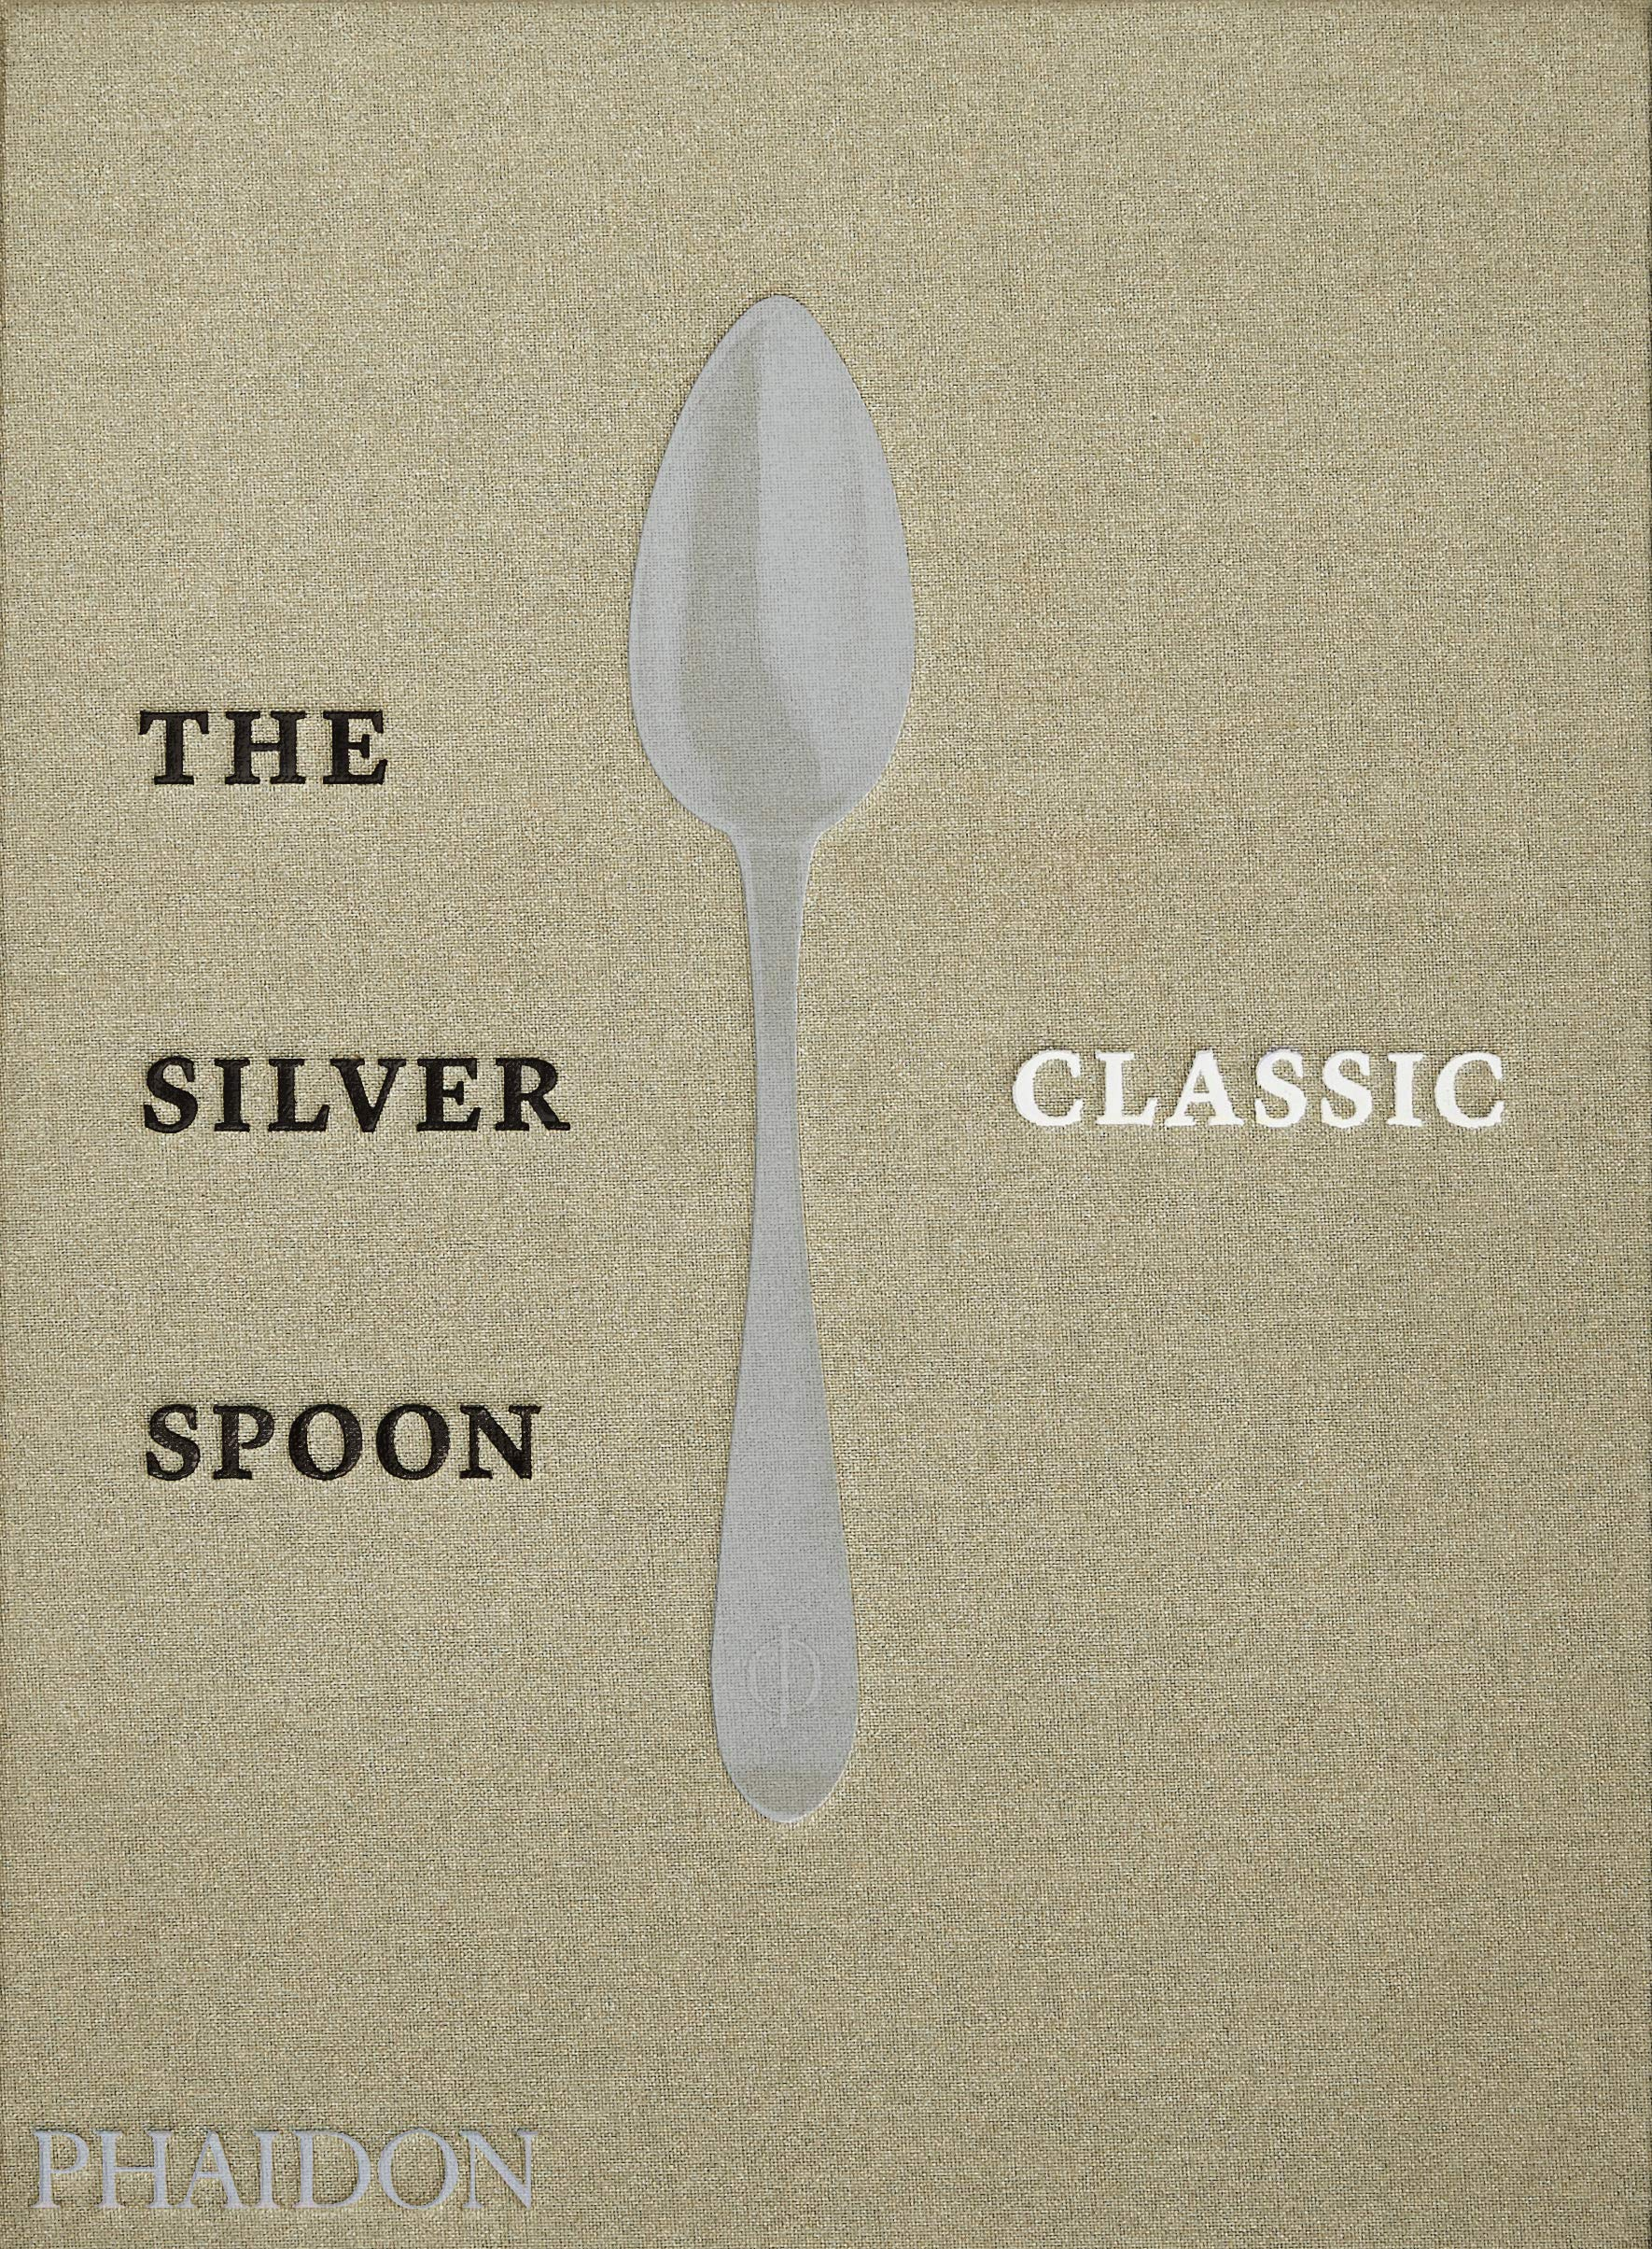 celebrate-picture-books-picture-book-review-the-silver-spoon-classic-cover